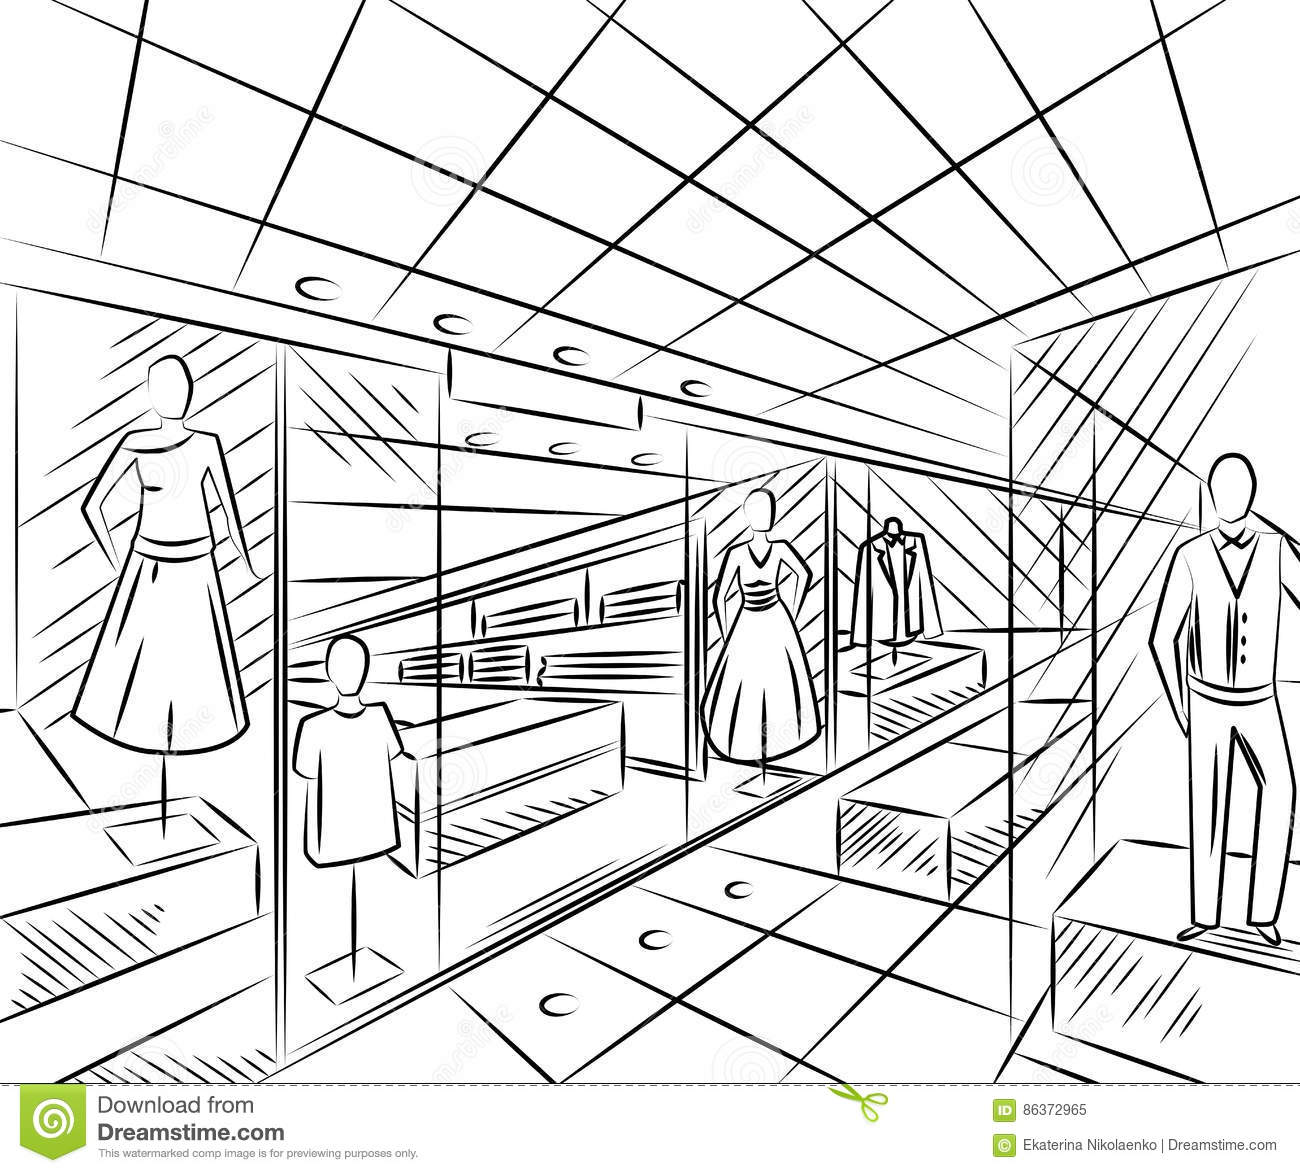 Interior Design Line Art Vector : Shopping center with fashion stores interior design in